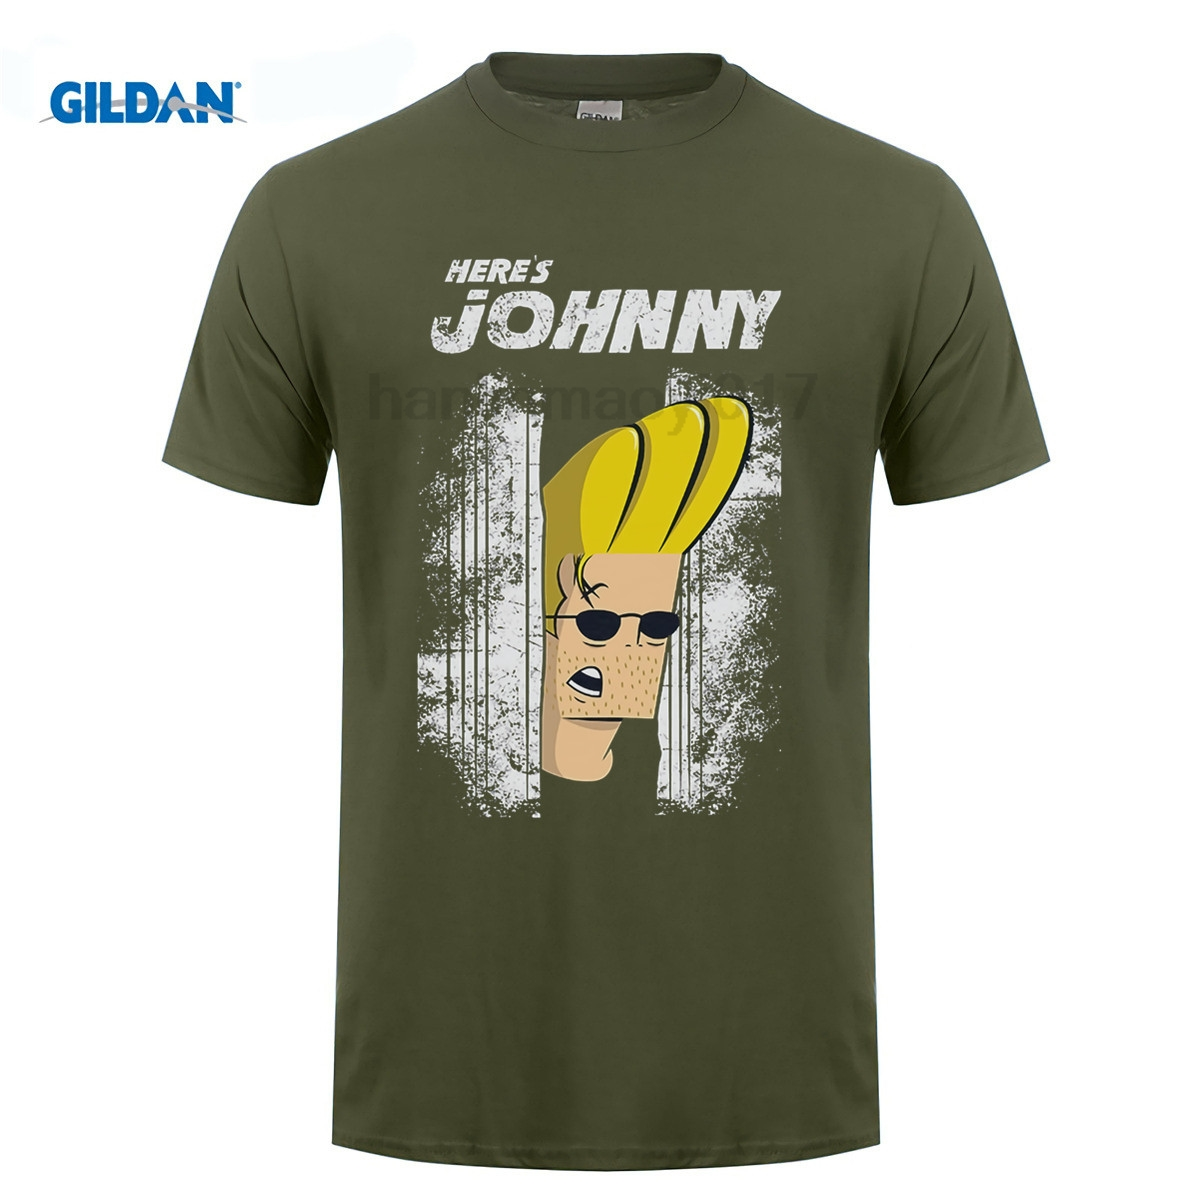 JOHNNY BRAVO T SHIRT HERE'S JOHNNY THE SHINING PARODY PUN JOKE T-Shirt Summer Famous Clothing Tops Men Tee Shirts image